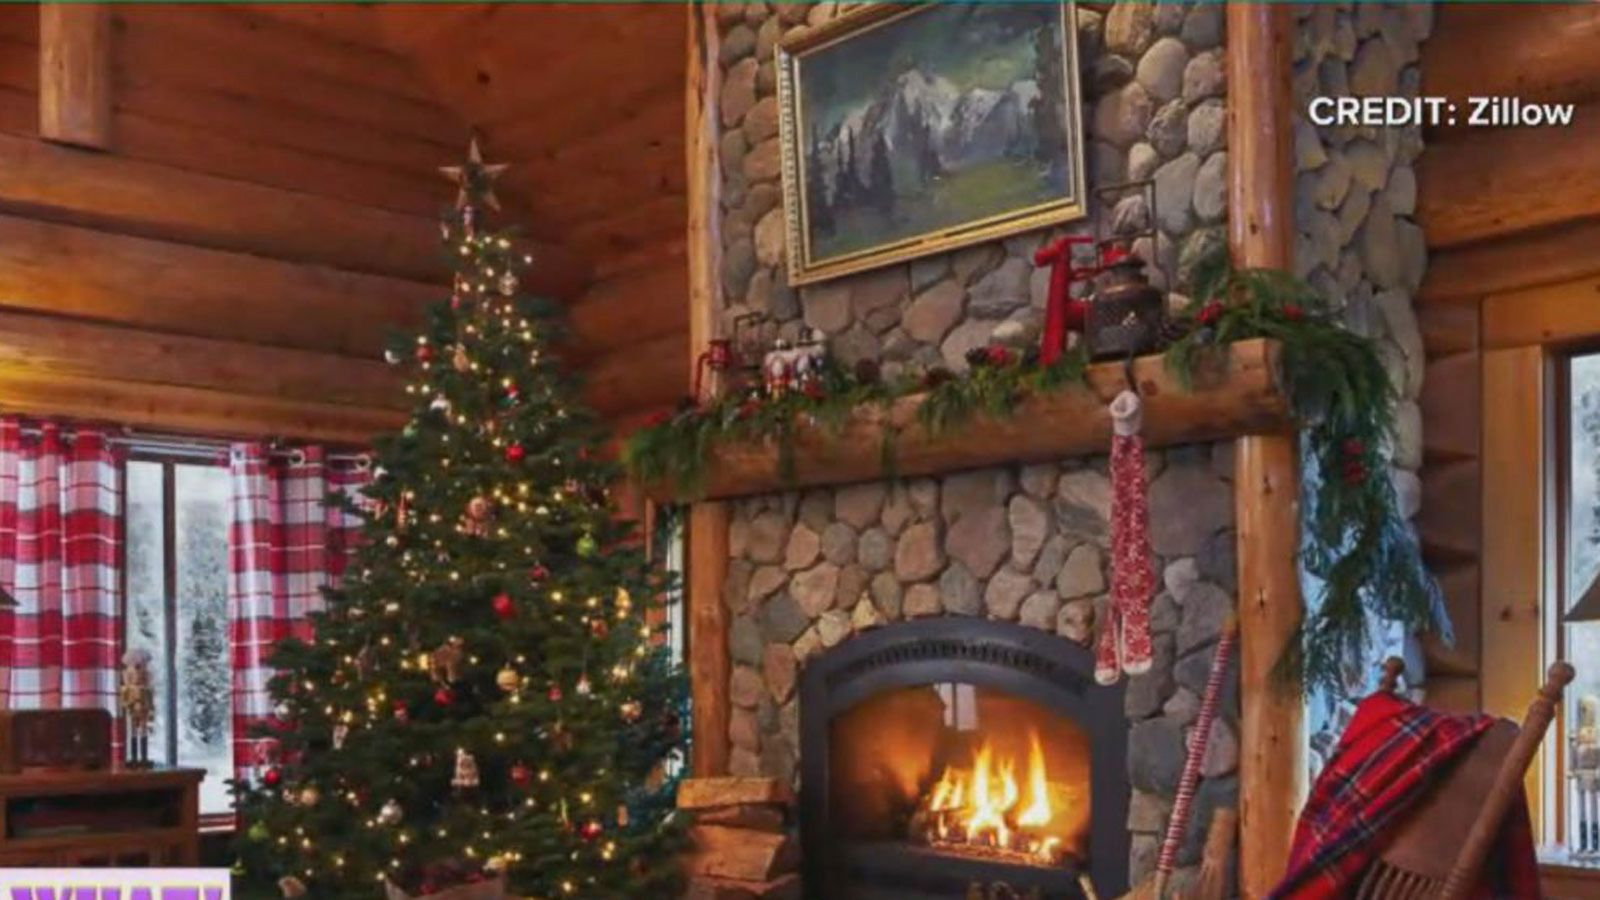 VIDEO: Santa's House Listed for $657K in the North Pole